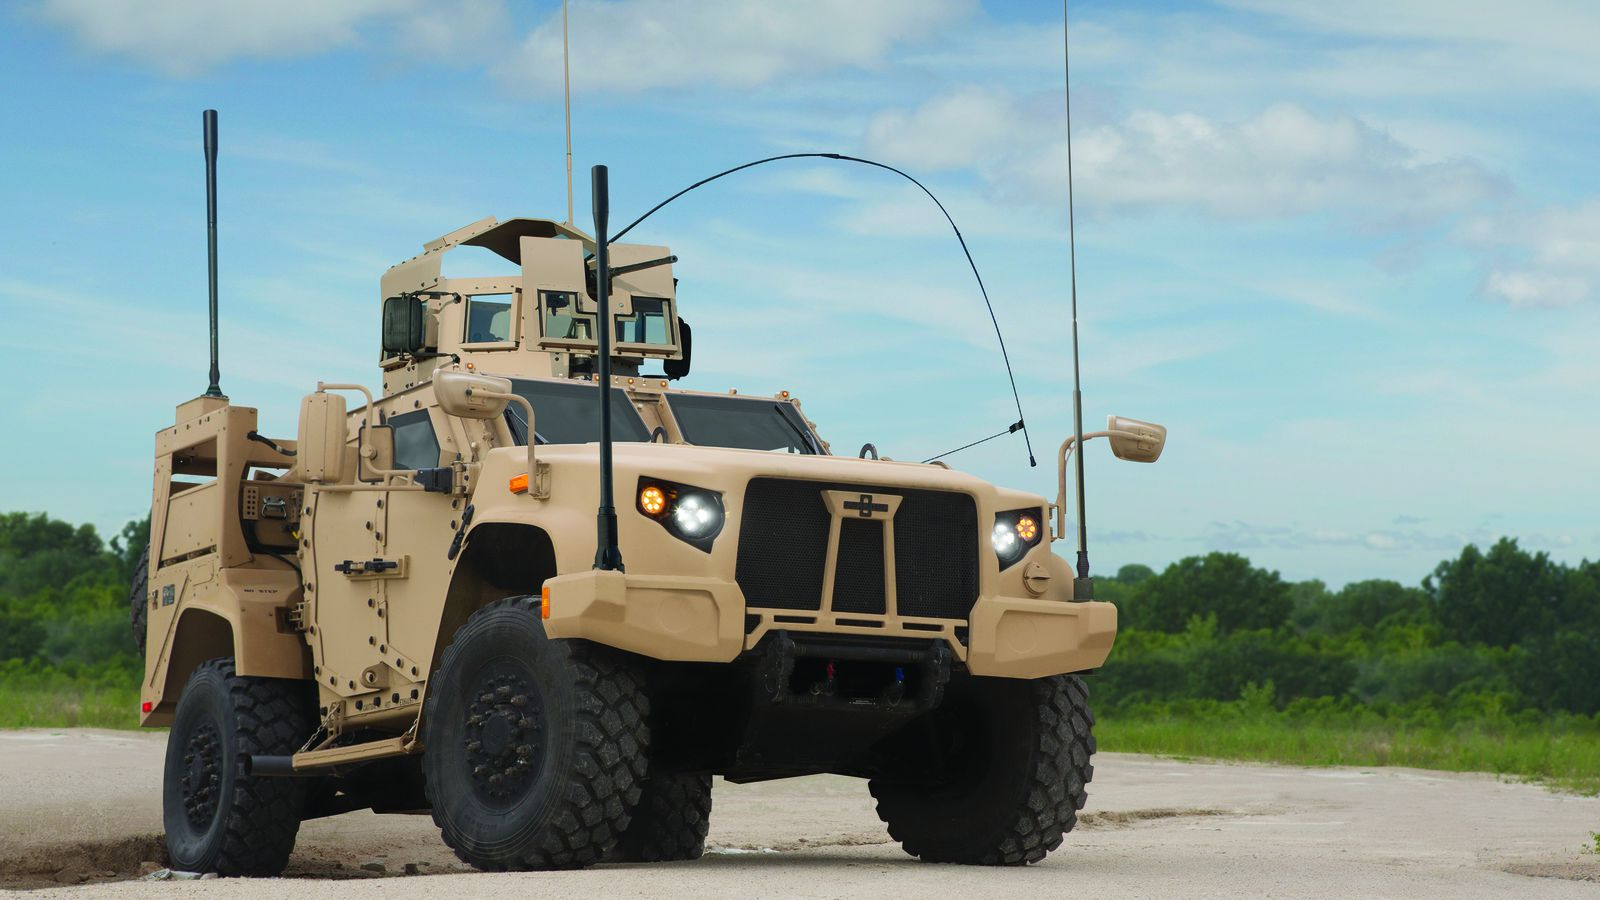 Jb Lighting P7 Update Here Is The Badass Truck Replacing The Us Military 39s Aging